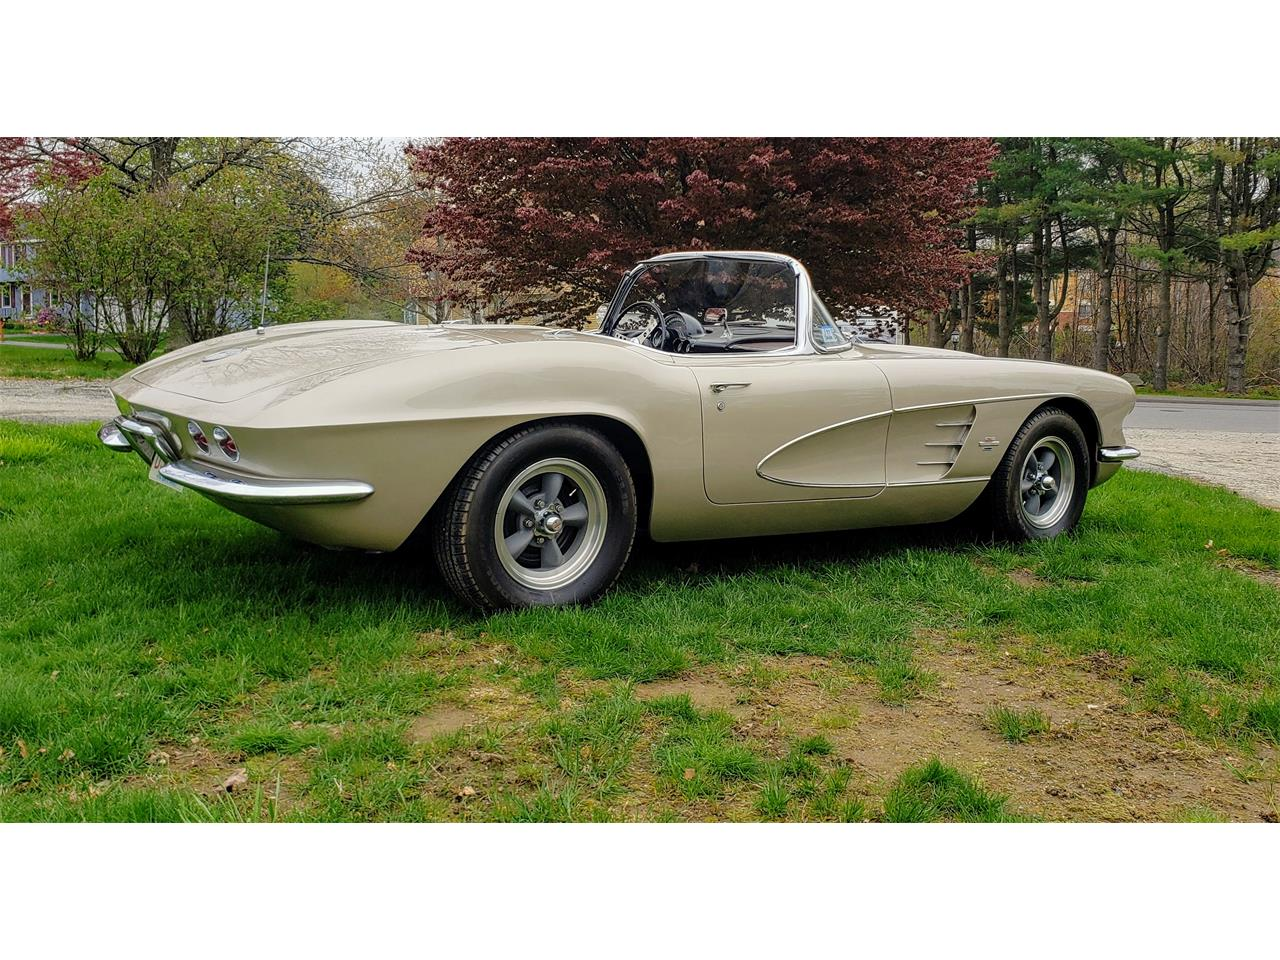 Large Picture of Classic '61 Chevrolet Corvette located in Massachusetts - $58,000.00 Offered by a Private Seller - Q0QW